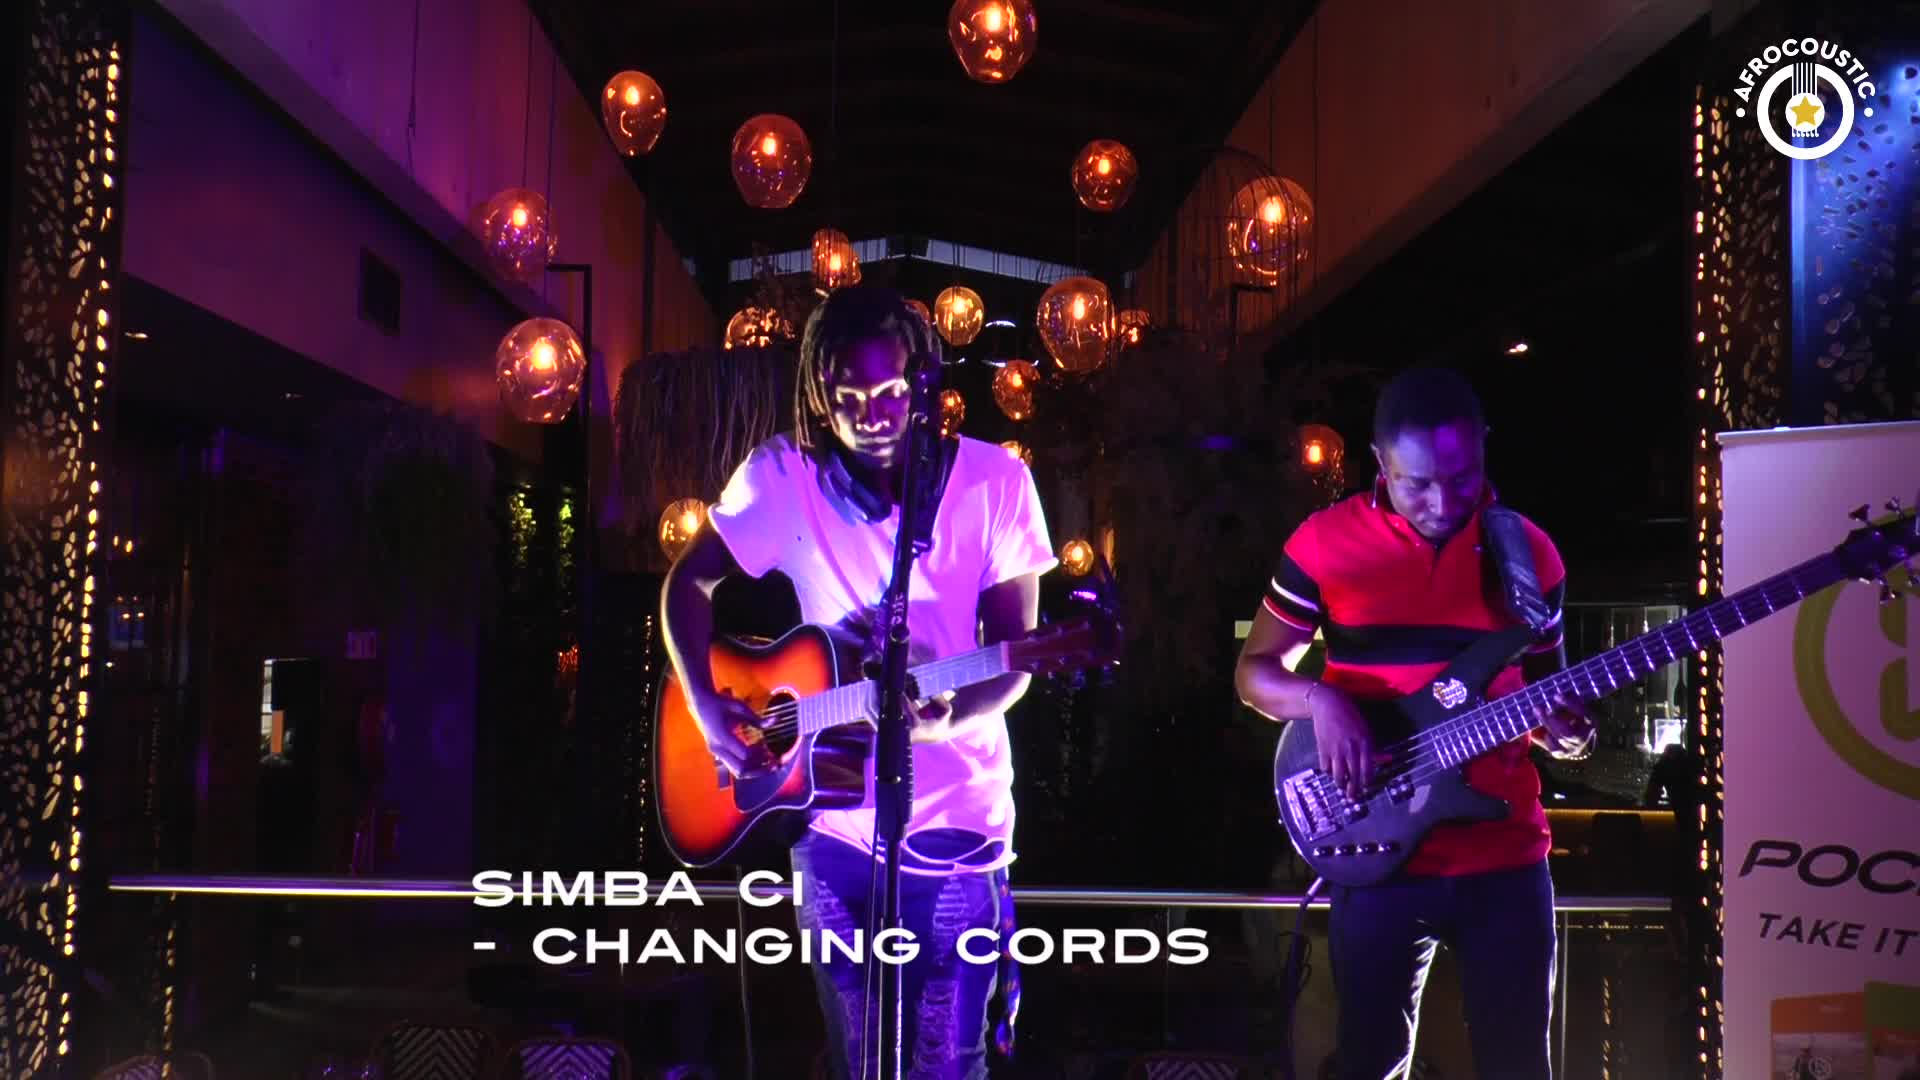 Afrocoustic - Simba Ci - Changin Cords